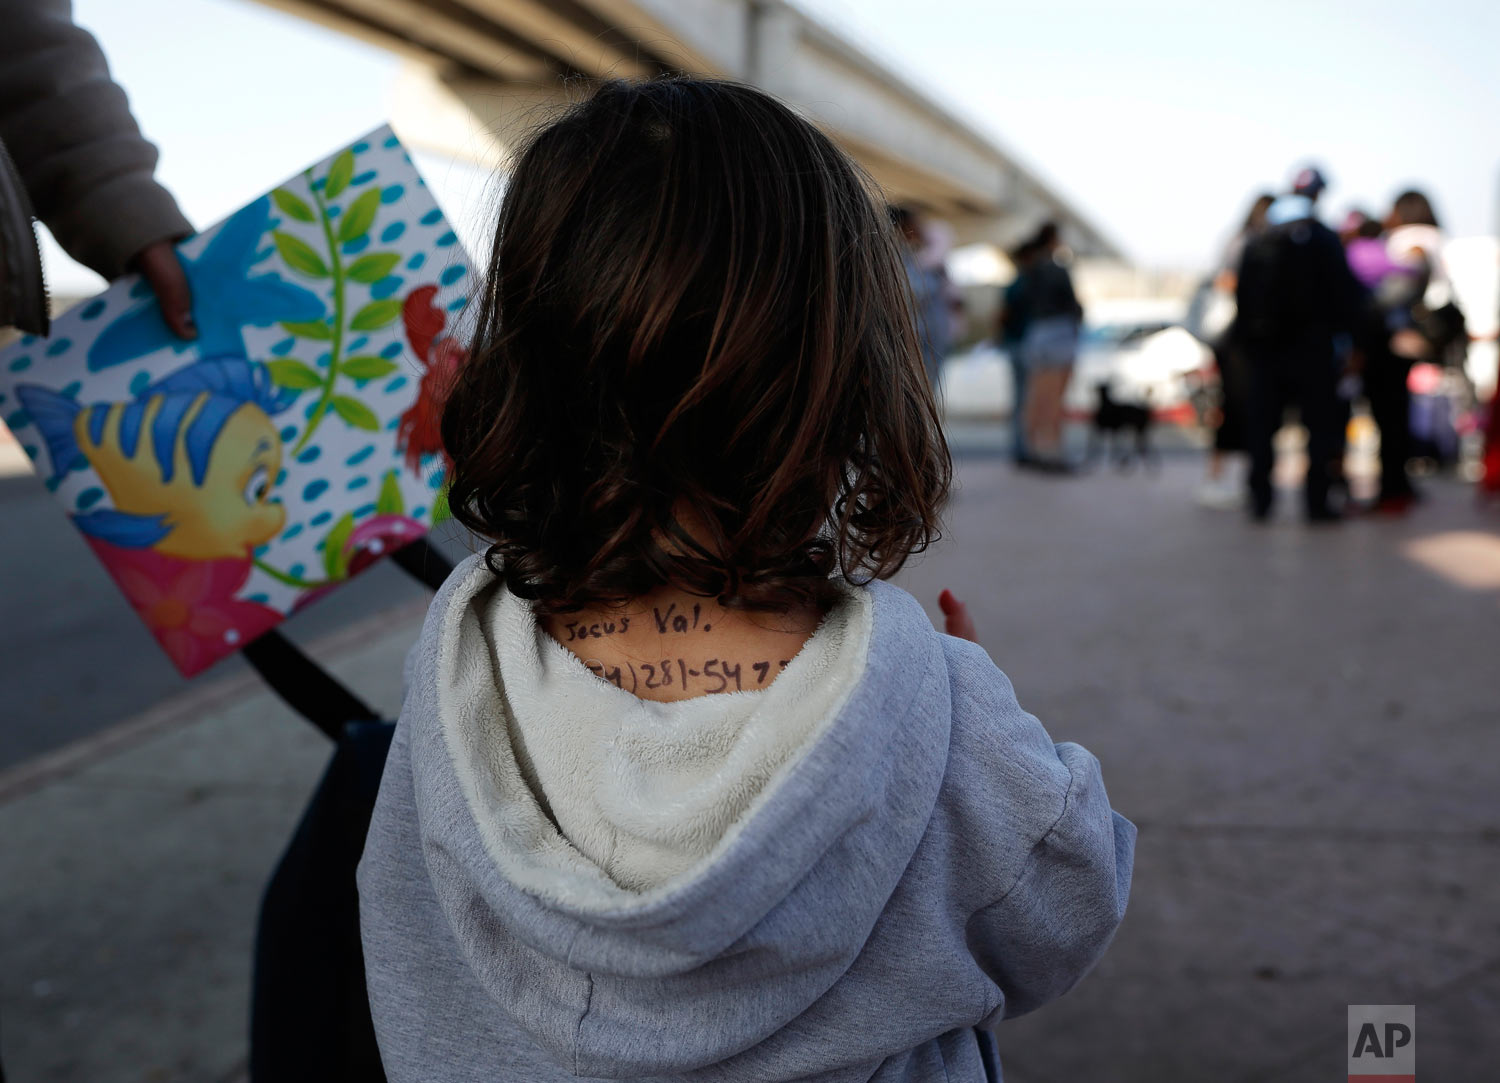 The back of a girl from the Mexican state of Michoacan displays a name and number, written in ink. She waits to apply for asylum in the United States with her mom and sister, in Tijuana, Mexico, April 25, 2019. Her mother said she wrote the information on her daughter because she feared losing track of the child if separated during the asylum application process. (AP Photo/Gregory Bull)